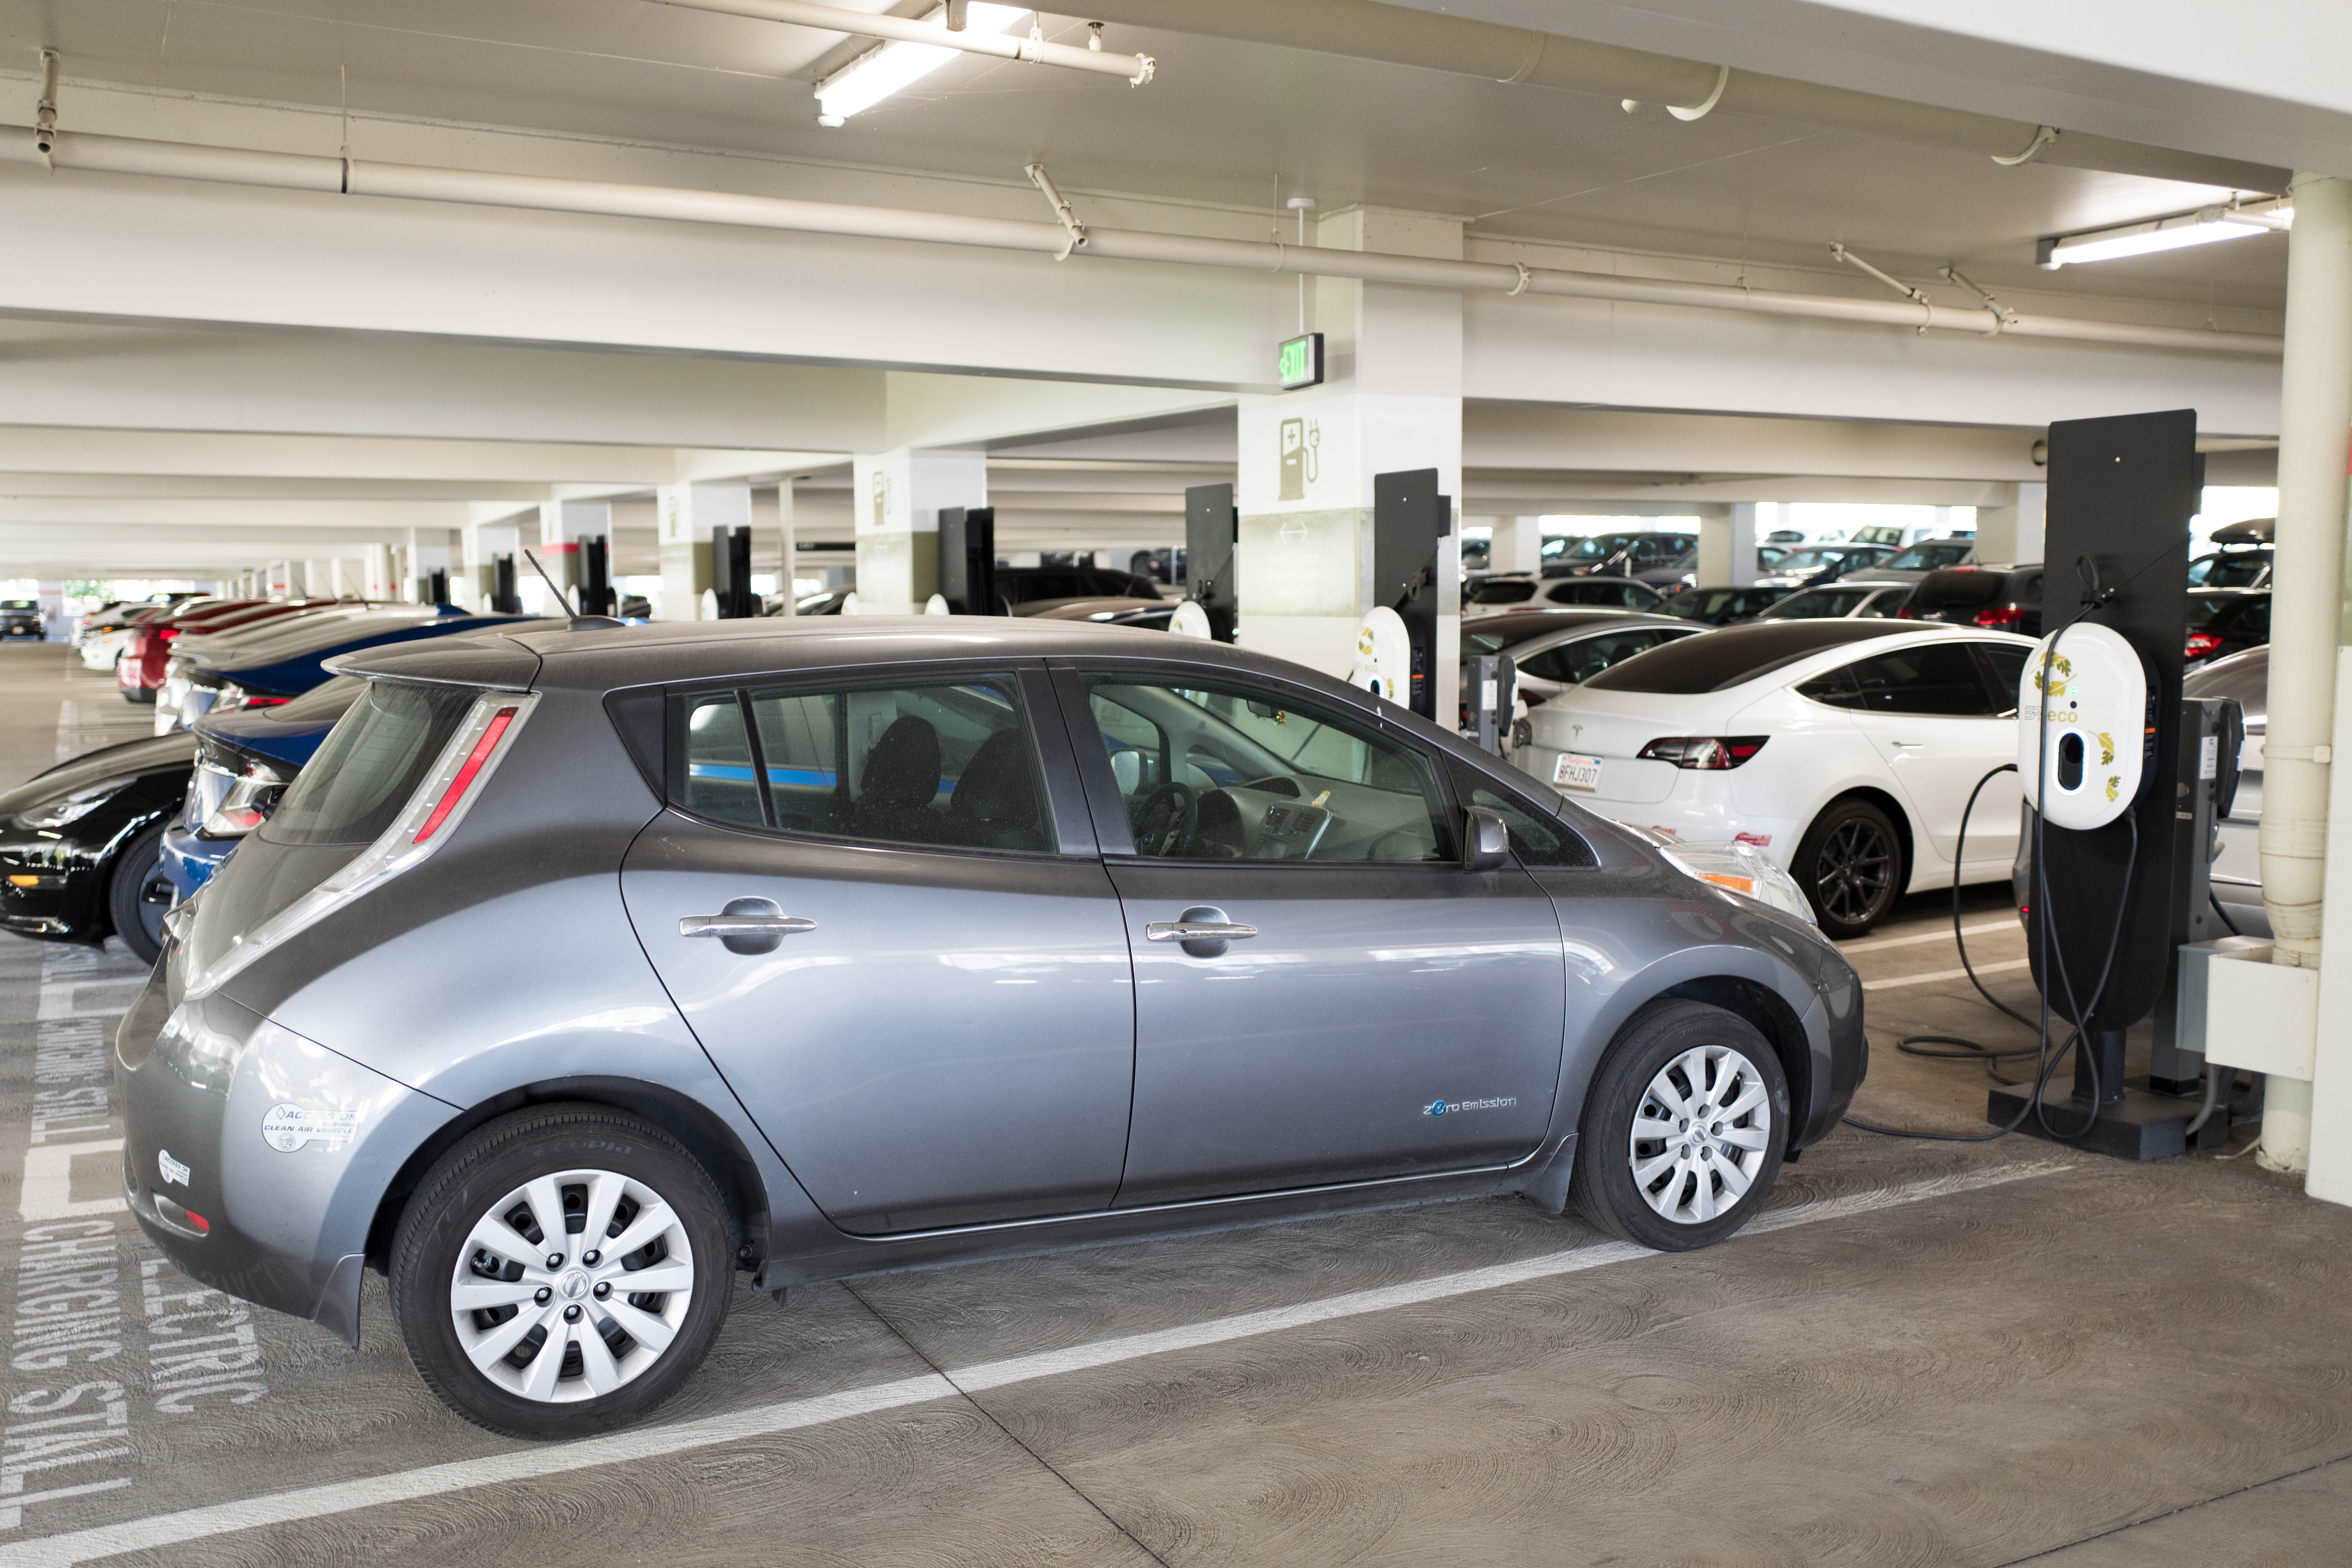 Enlarge Nissan Leaf Electric Car Plugged In And Charging At An Vehicle Station San Ramon California September 26 2018